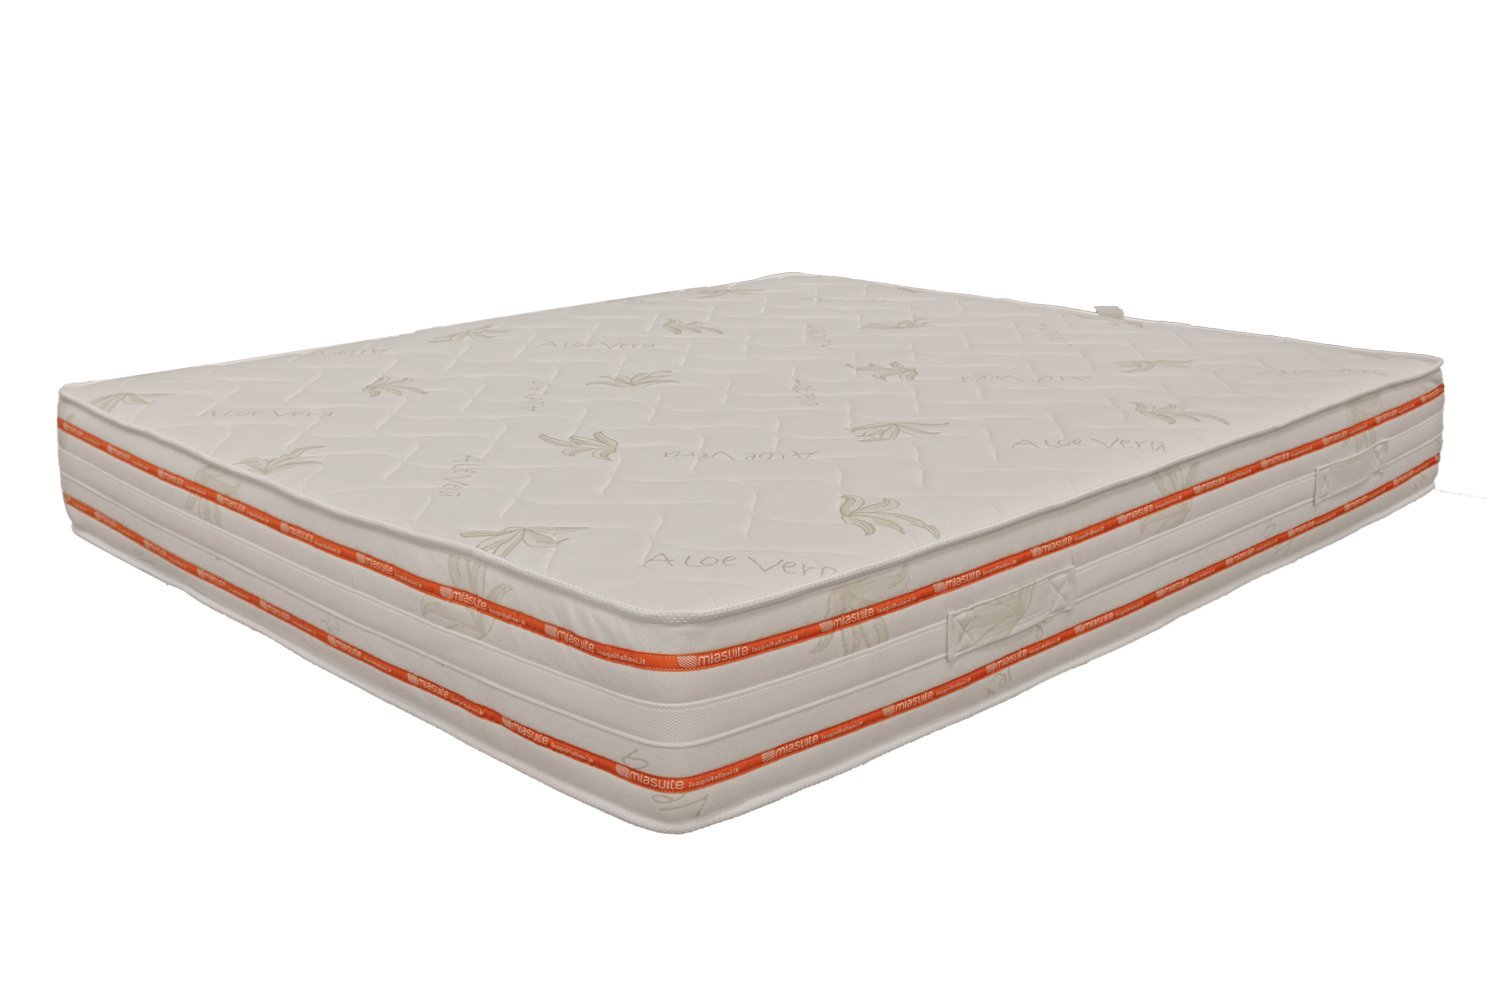 http://www.wellnesscorner.it/wp-content/uploads/2015/11/Materasso-memory-foam.jpg